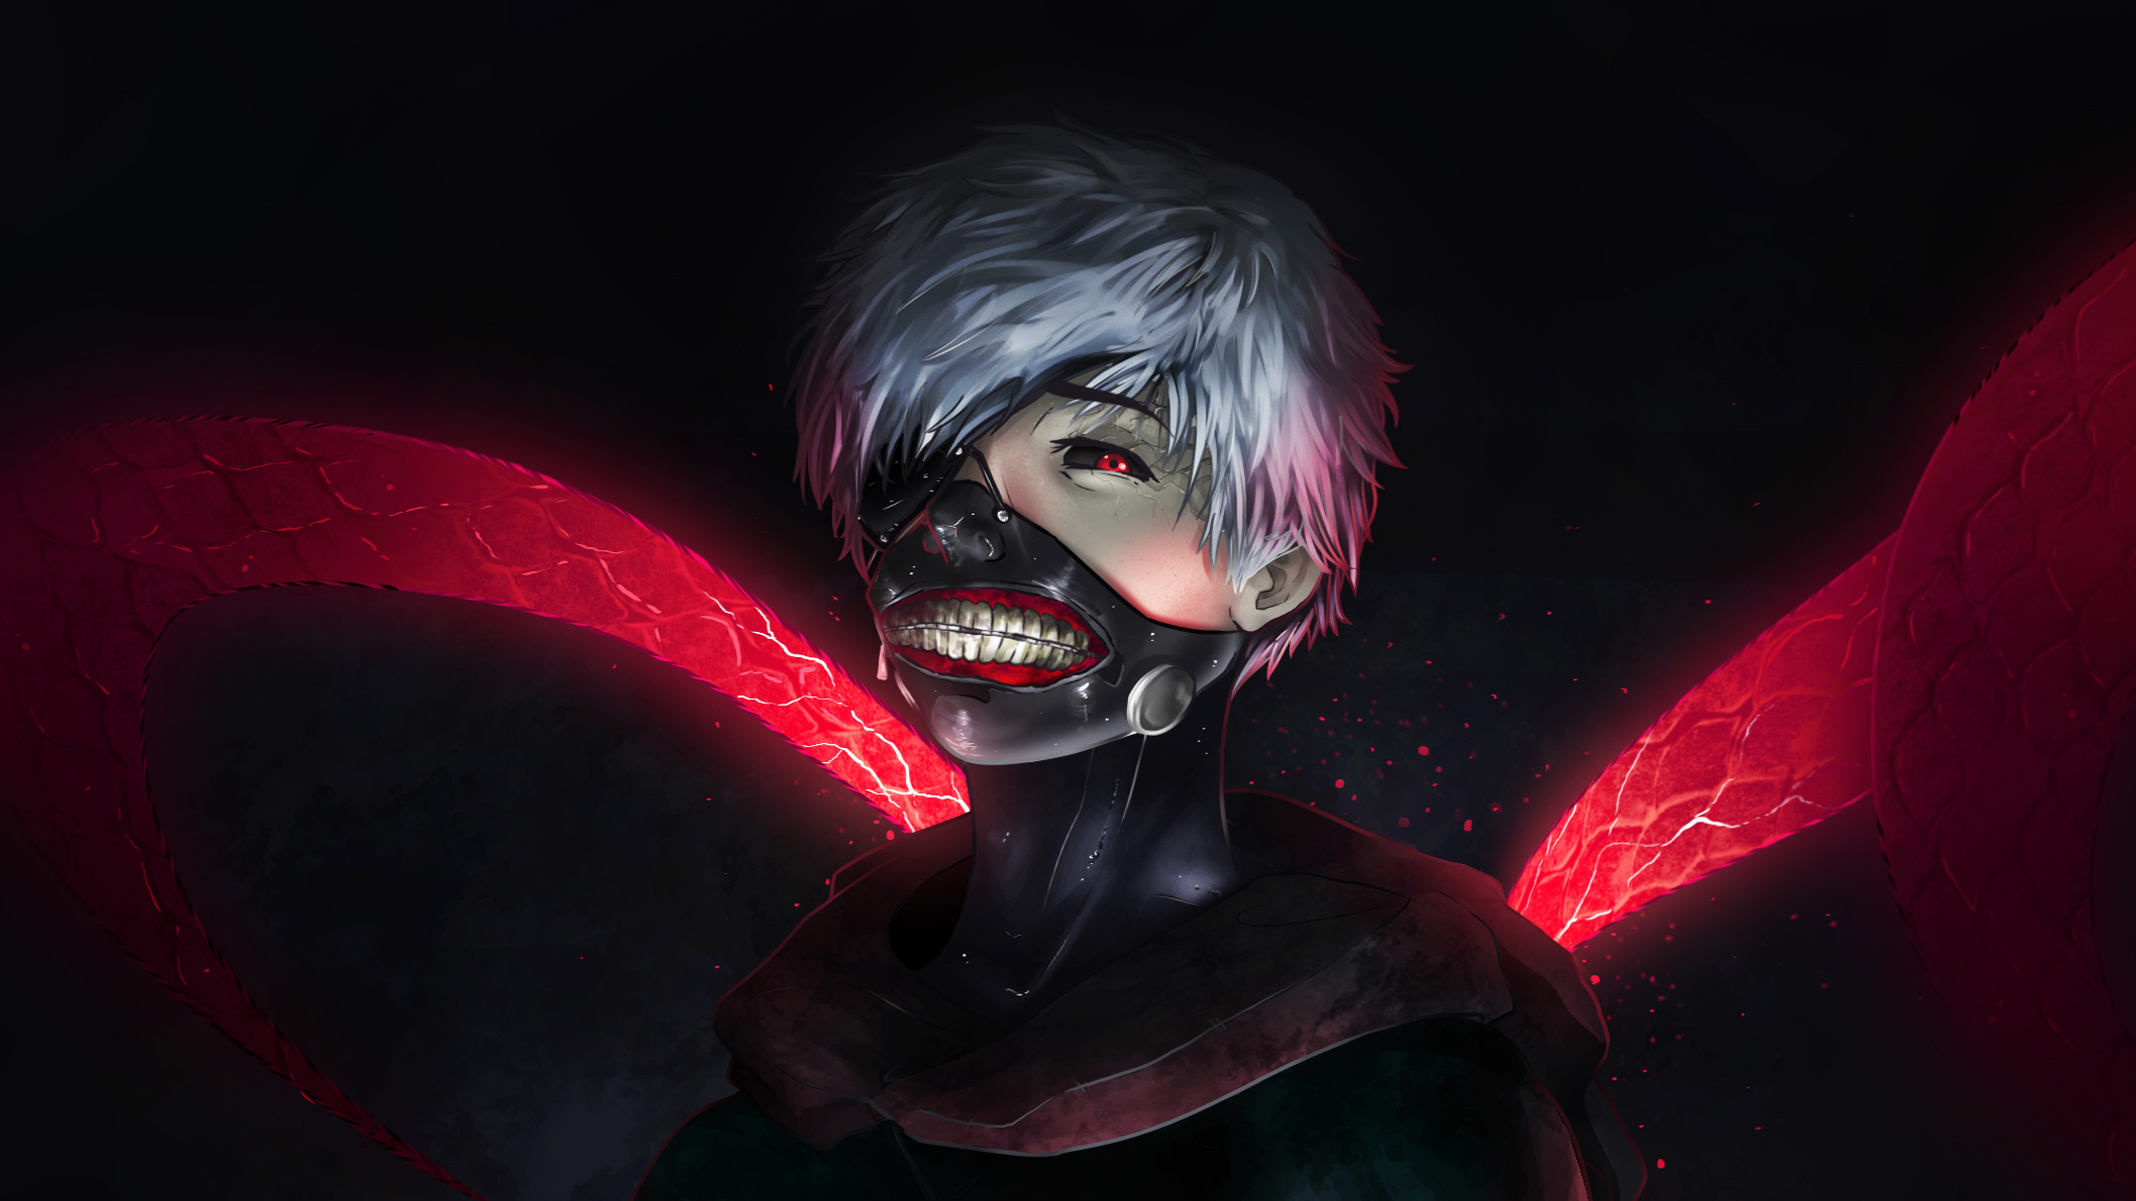 1920x1080 Tokyo Ghoul Ken Kaneki Art Laptop Full Hd 1080p Hd 4k Wallpapers Images Backgrounds Photos And Pictures